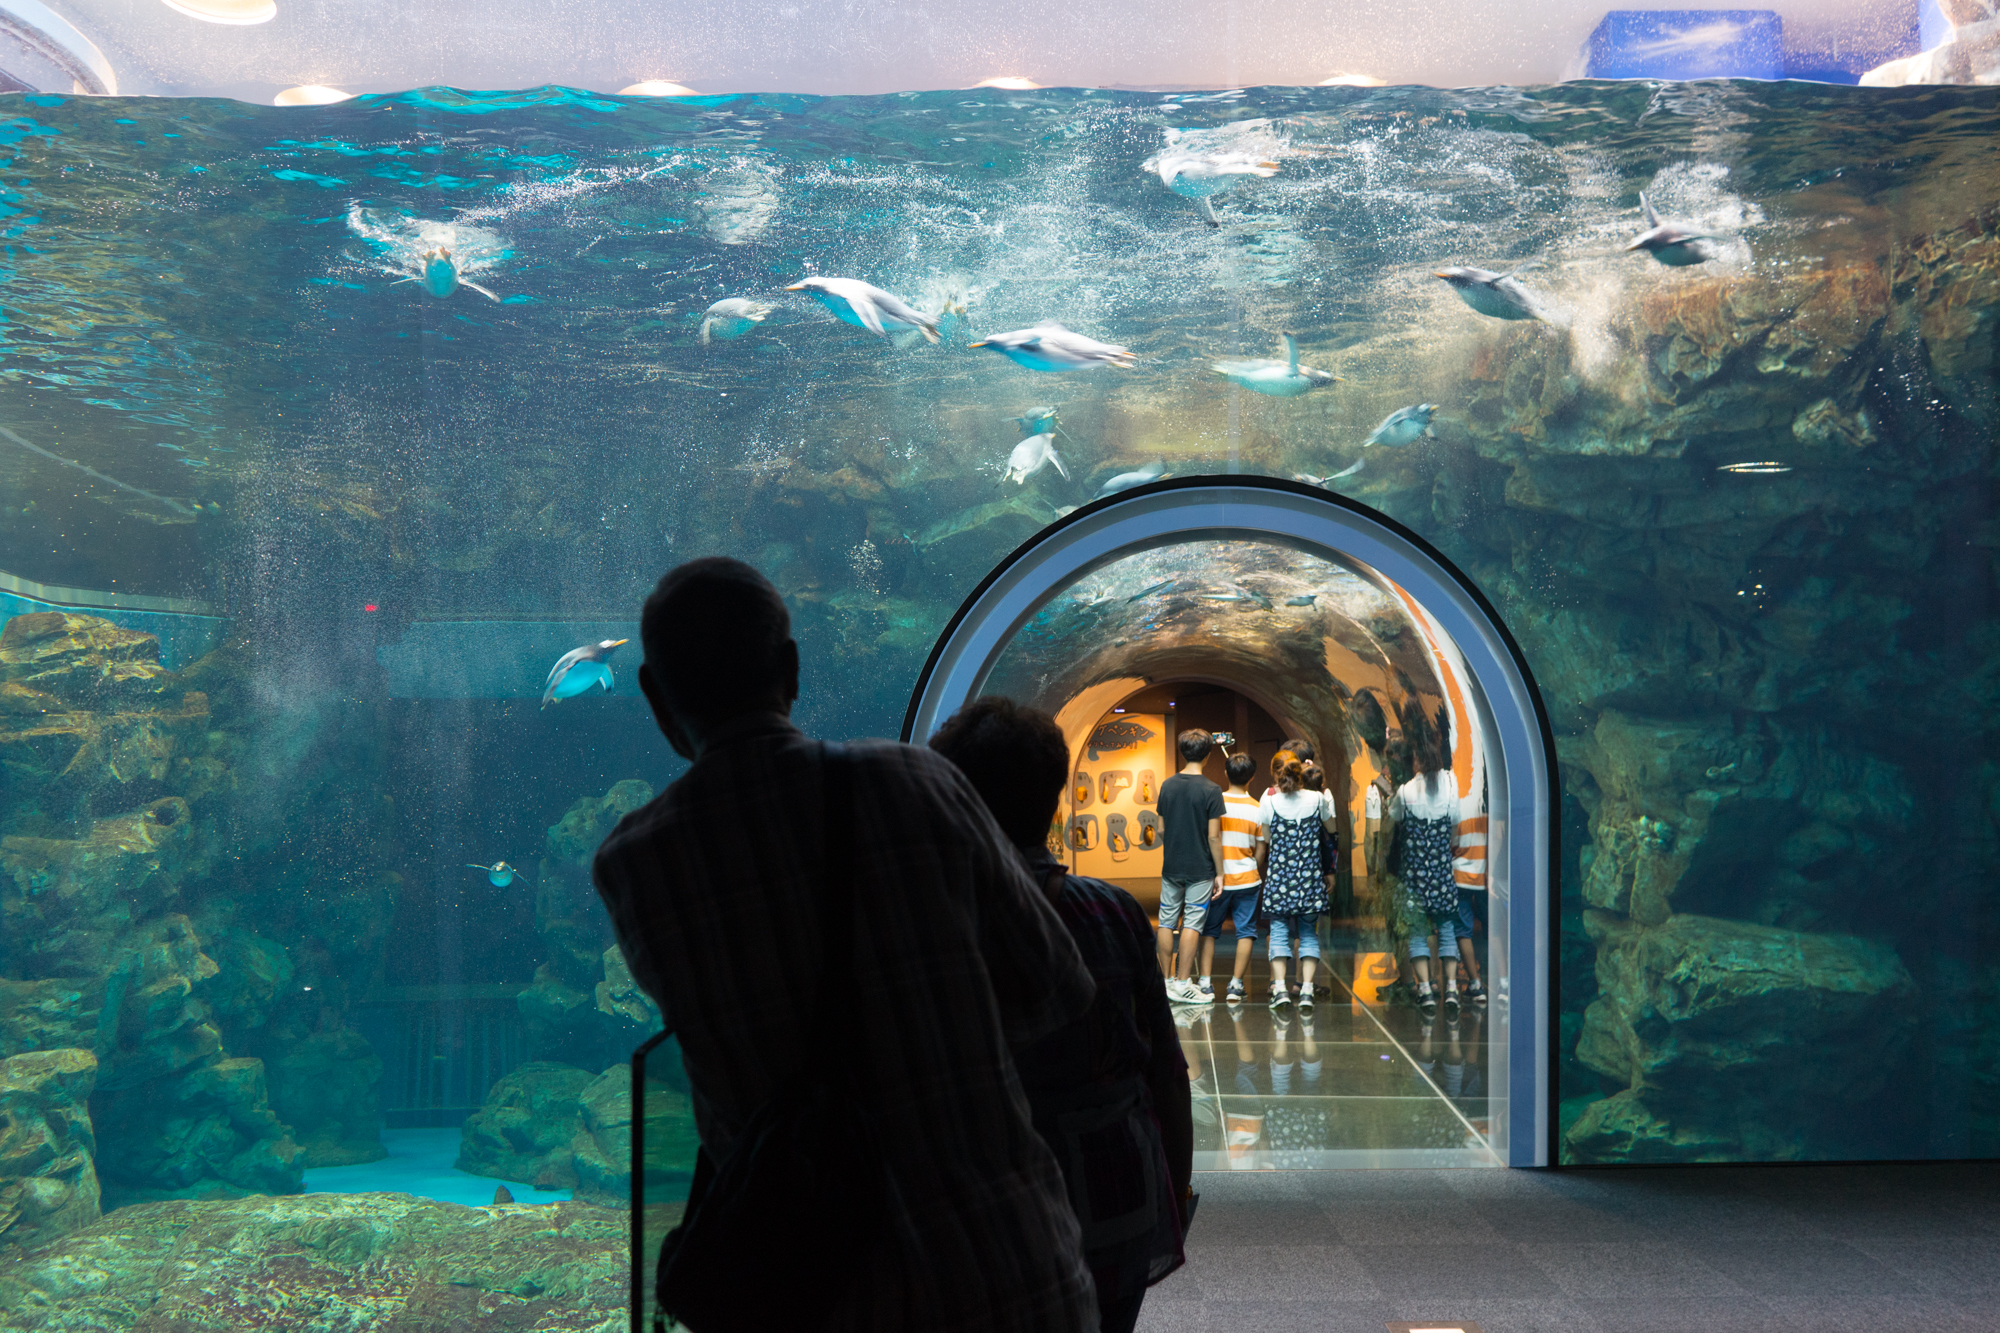 Kaikyokan Aquarium, Shimonoseki, Japan